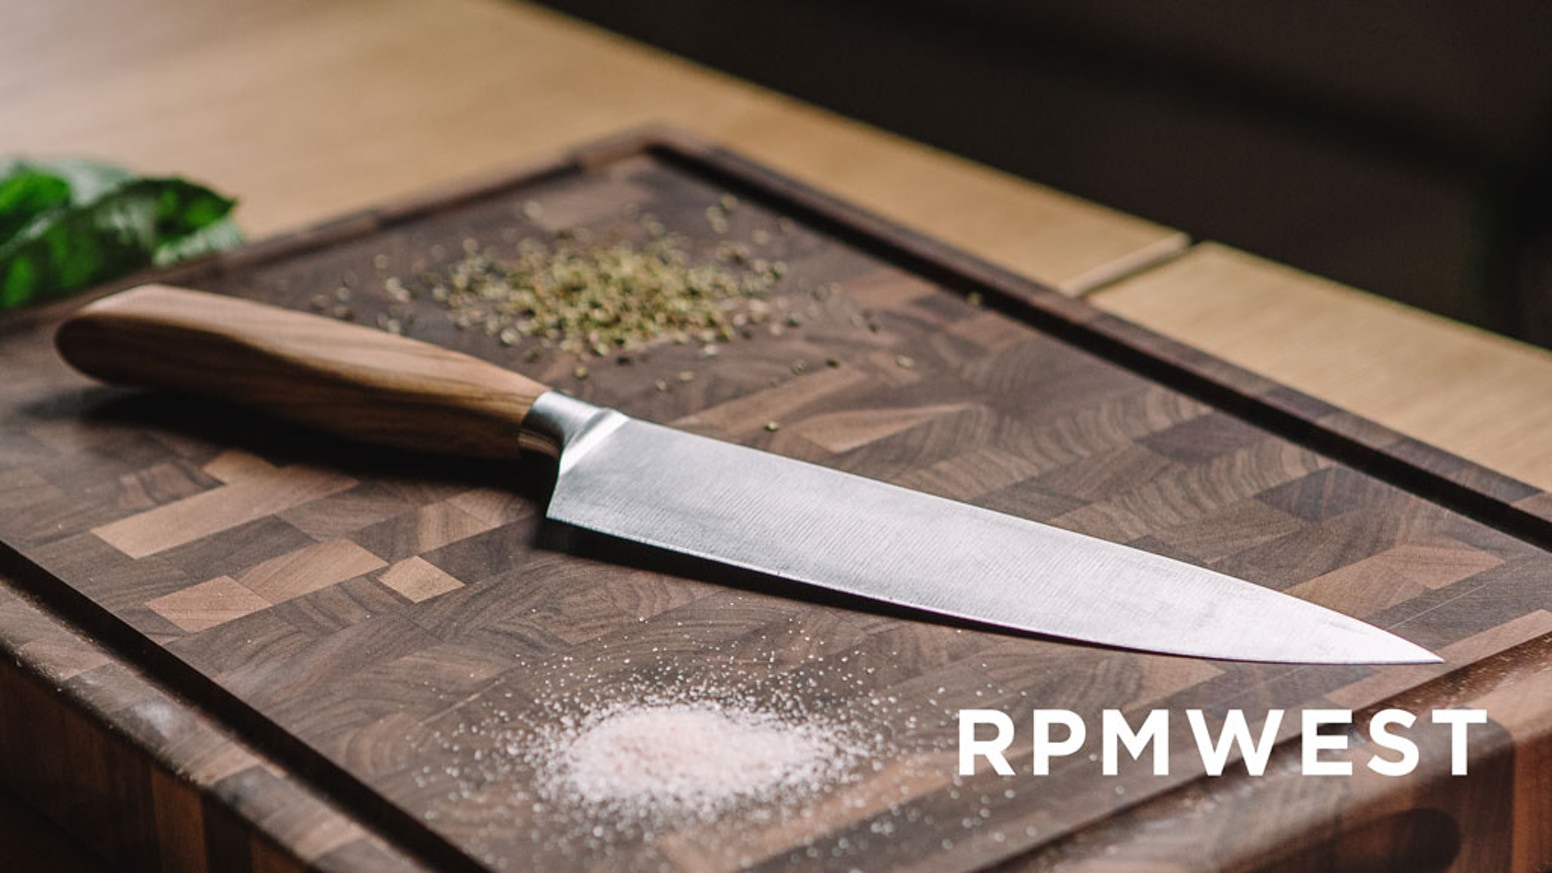 RPMWEST: The Perfect All-Around Kitchen Knife by Manuel ...